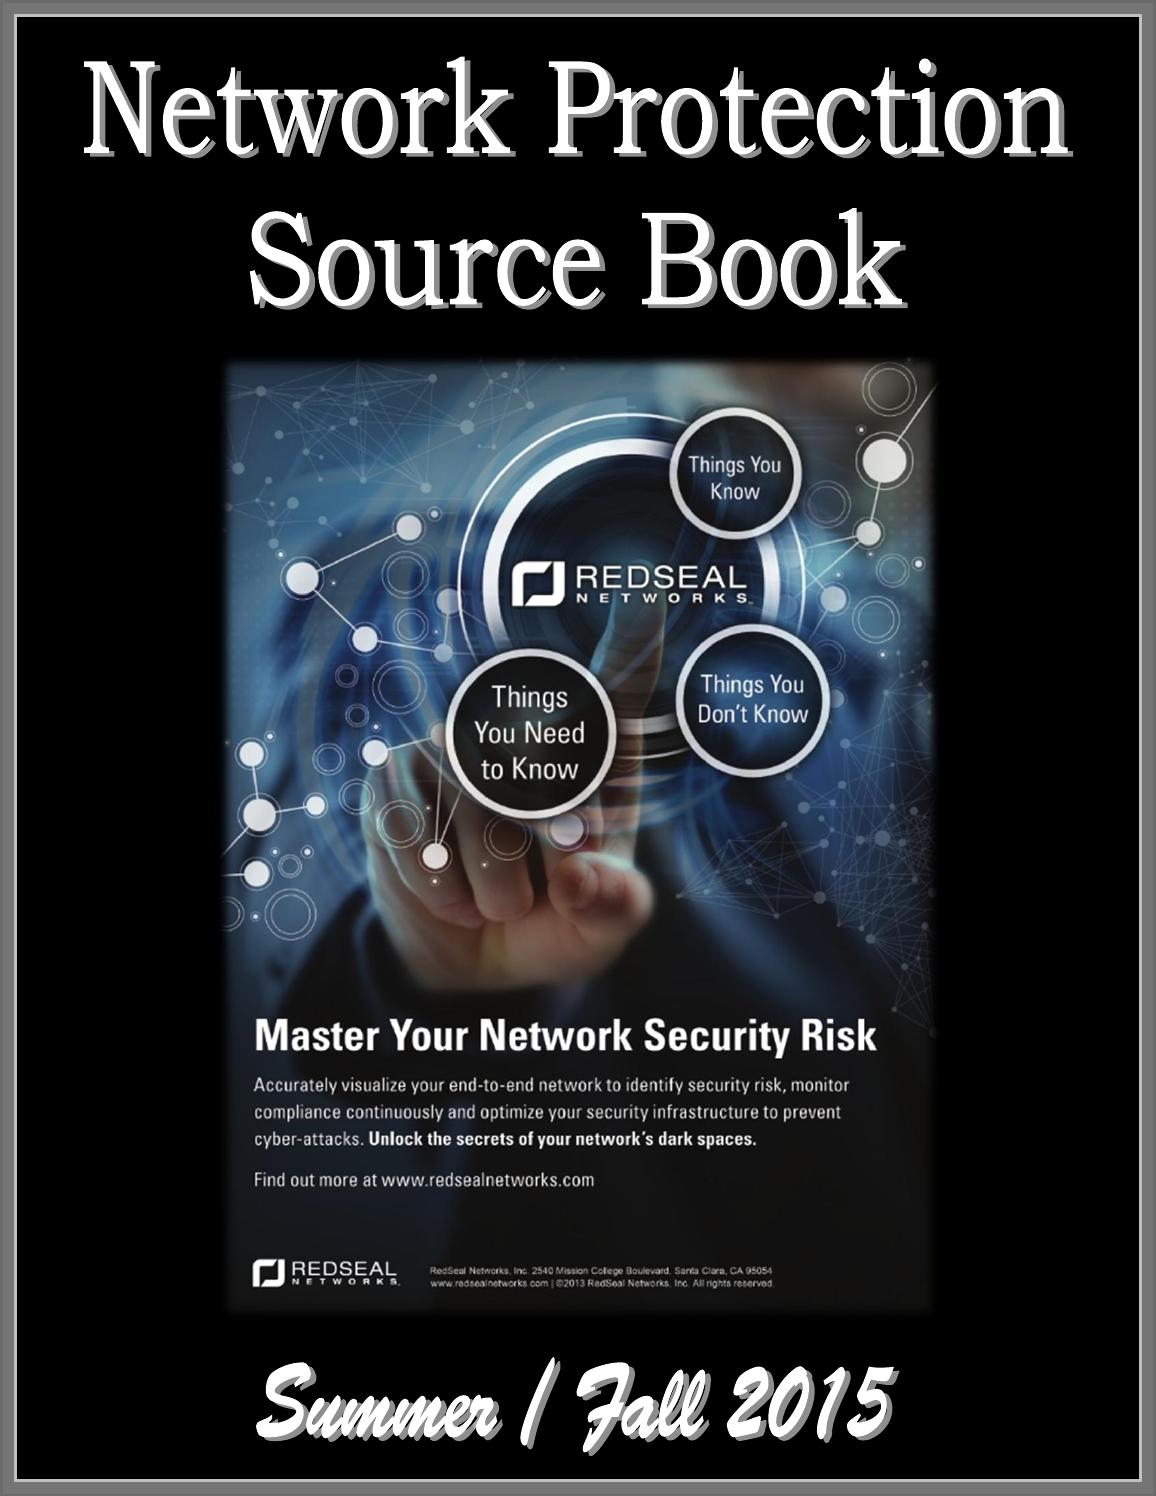 Network Protection Source Book by Federal Buyers Guide, inc